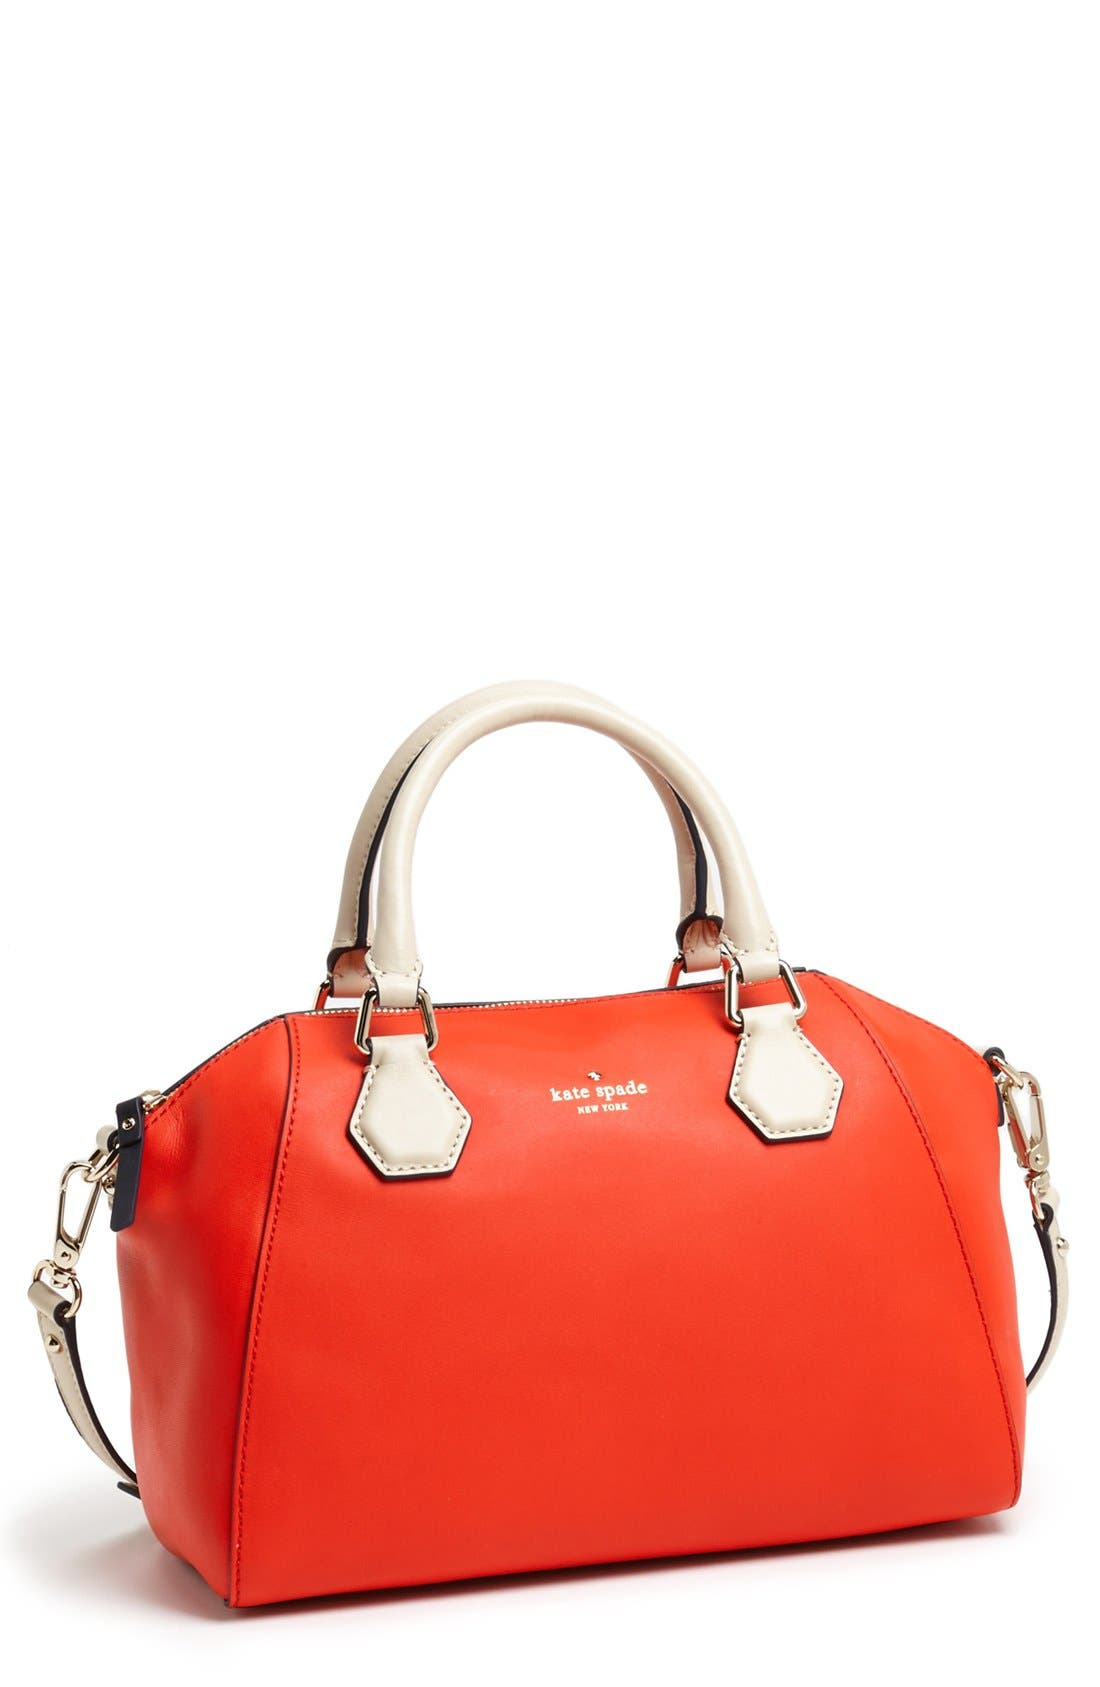 Main Image - kate spade new york 'catherine street - pippa' leather satchel